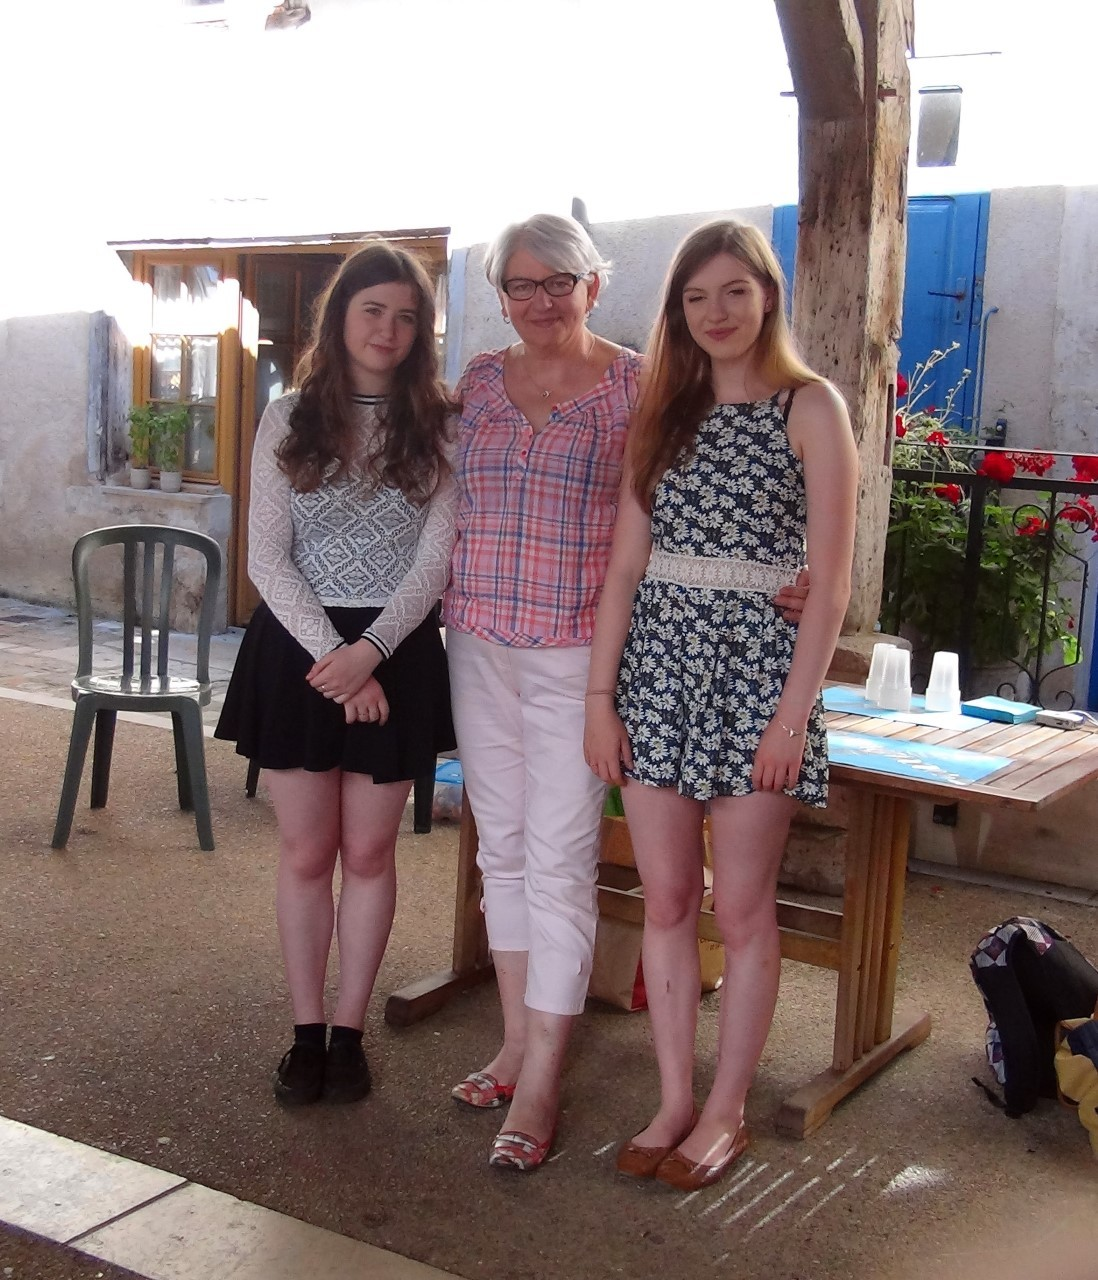 Alex Fairbairn (left) and Anna Stevenson (right) visited Lignieres and were welcomed by Solange Soulat - President of the Lignieres committee